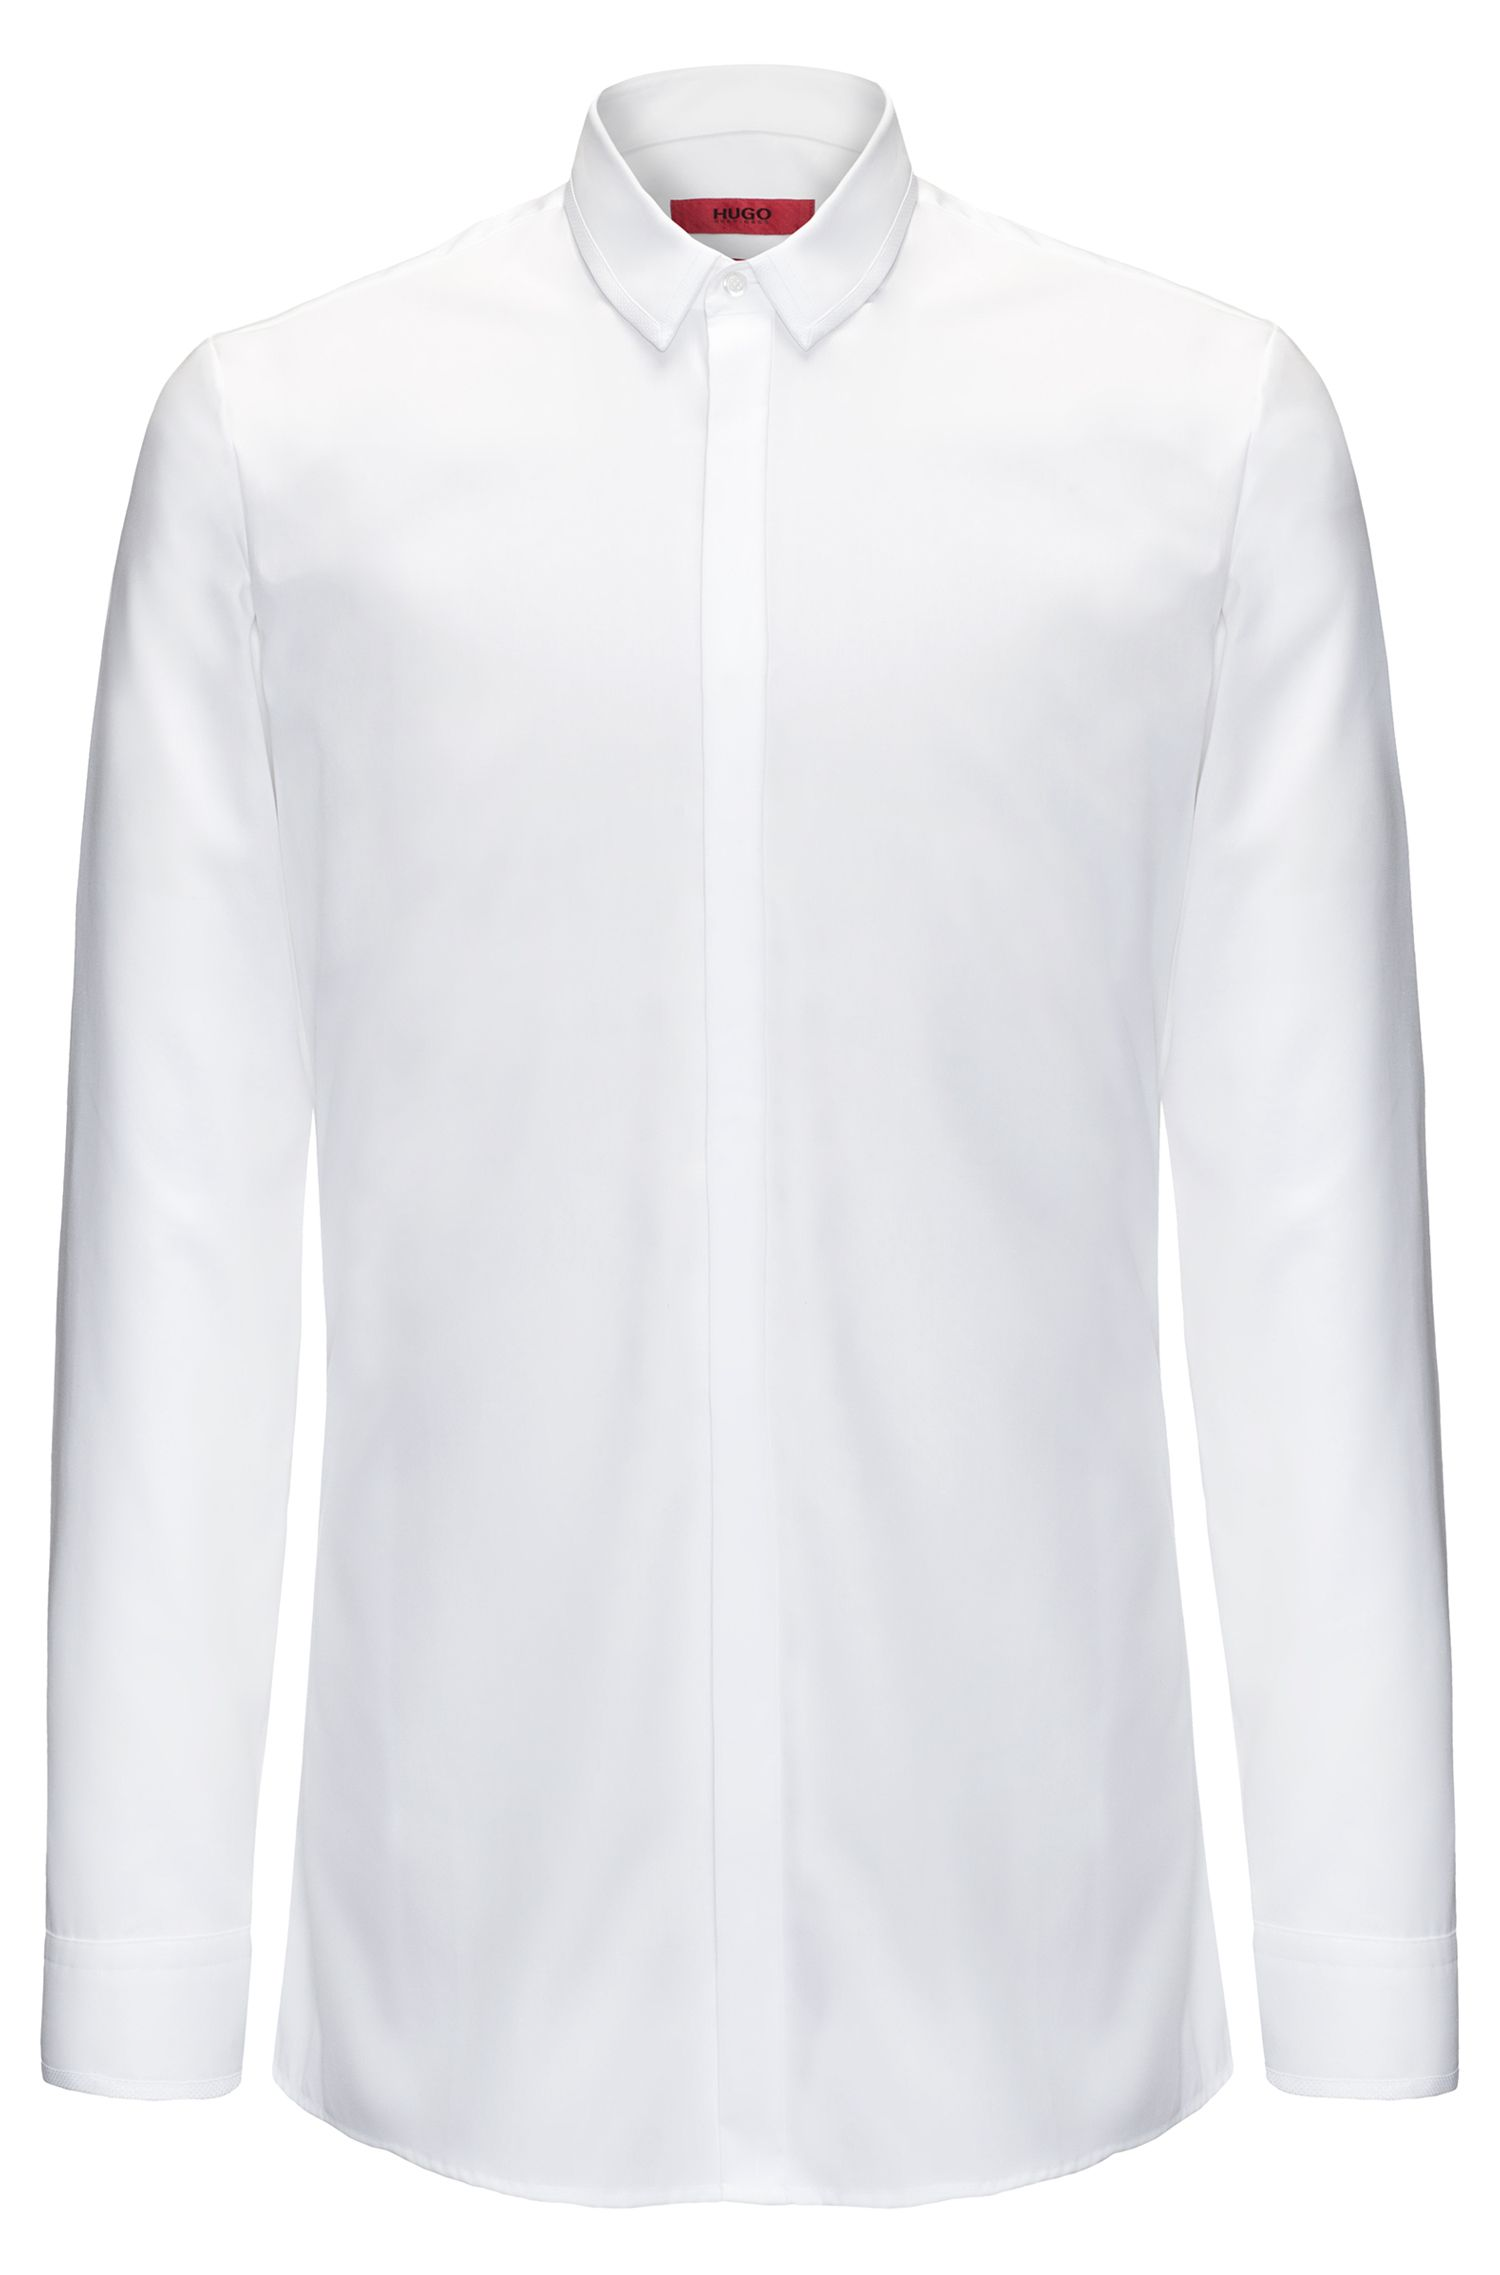 Easy-Iron Cotton Dress Shirt, Extra Slim Fit | Ebow